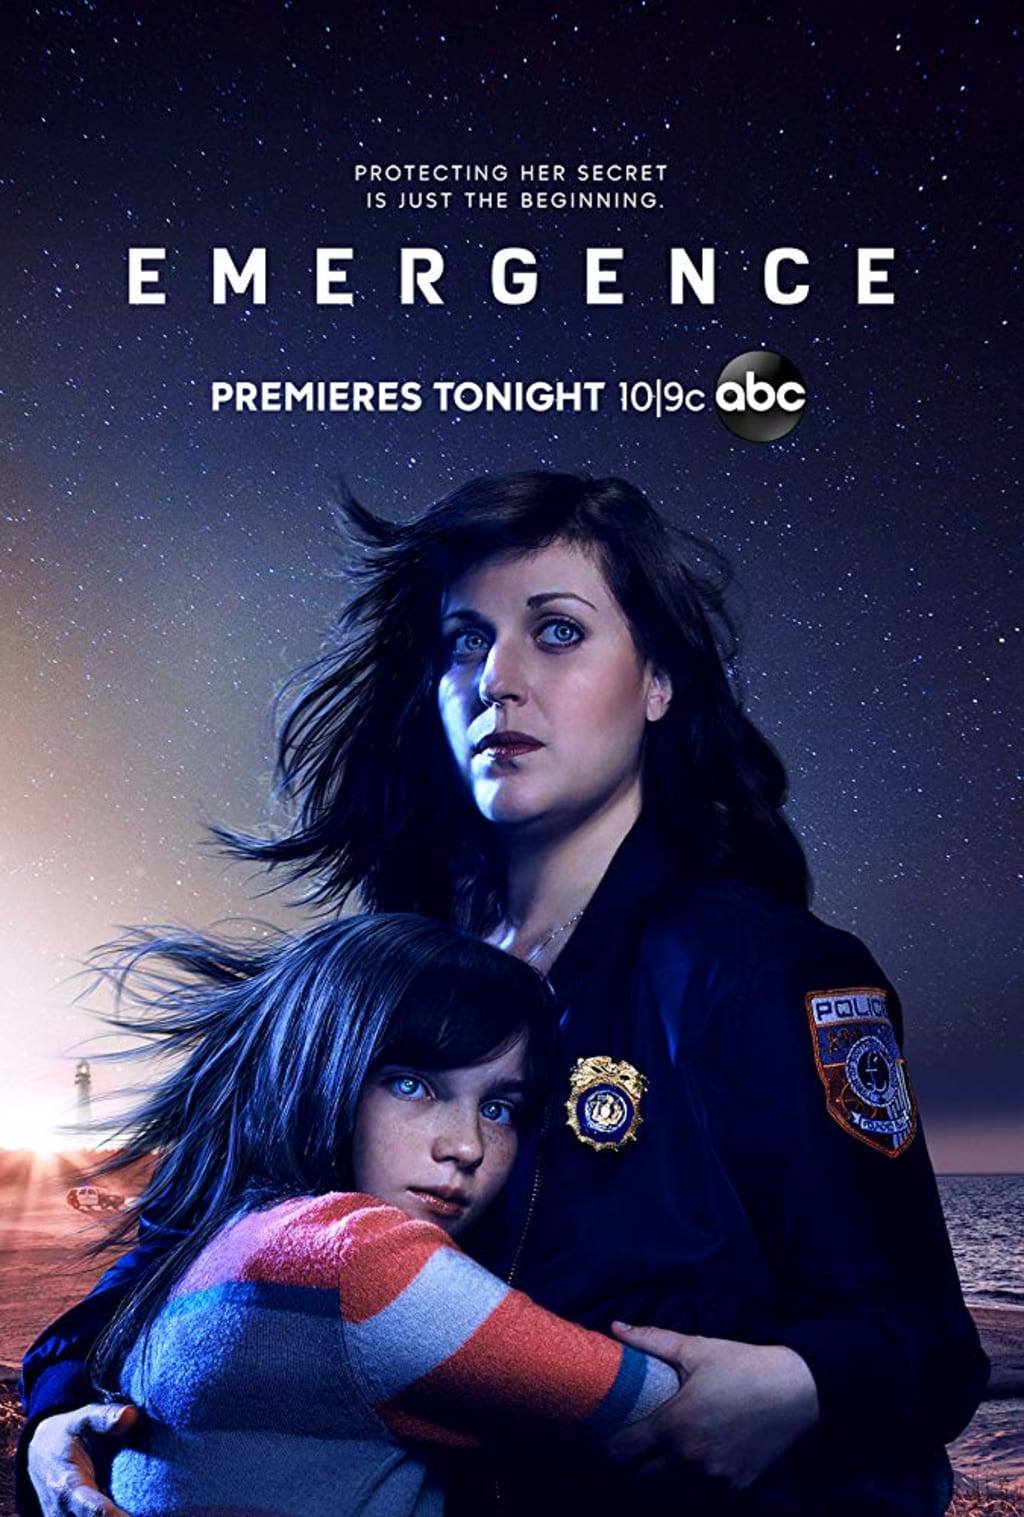 Review of 'Emergence' 1.6